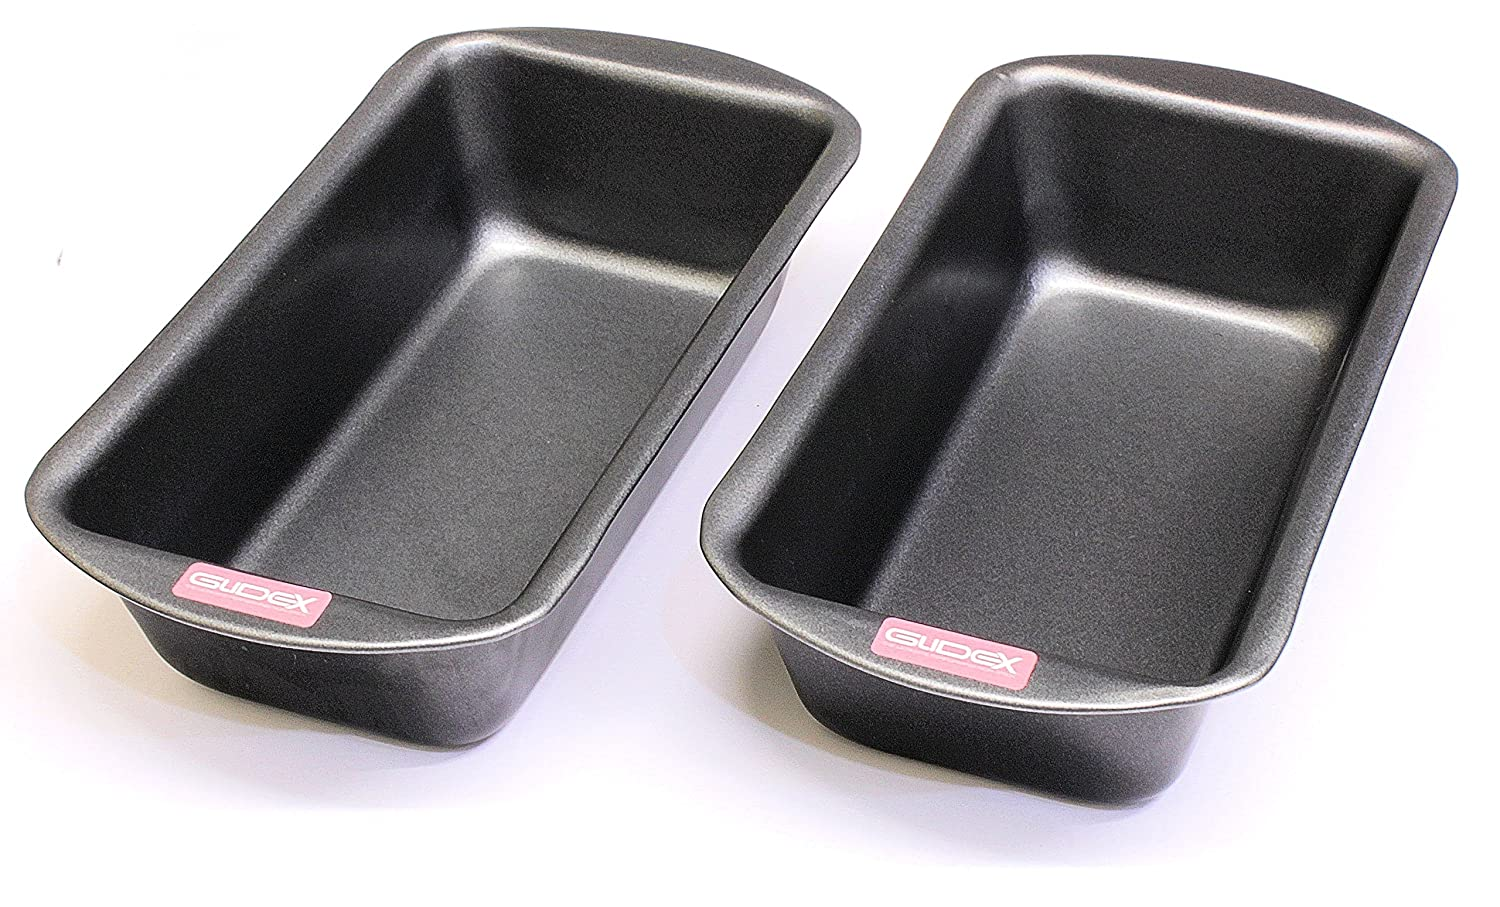 2LB Loaf Pan Twin Pack, 2LB (900g) Capacity, British Made with GlideX Non Stick by Lets Cook Cookware